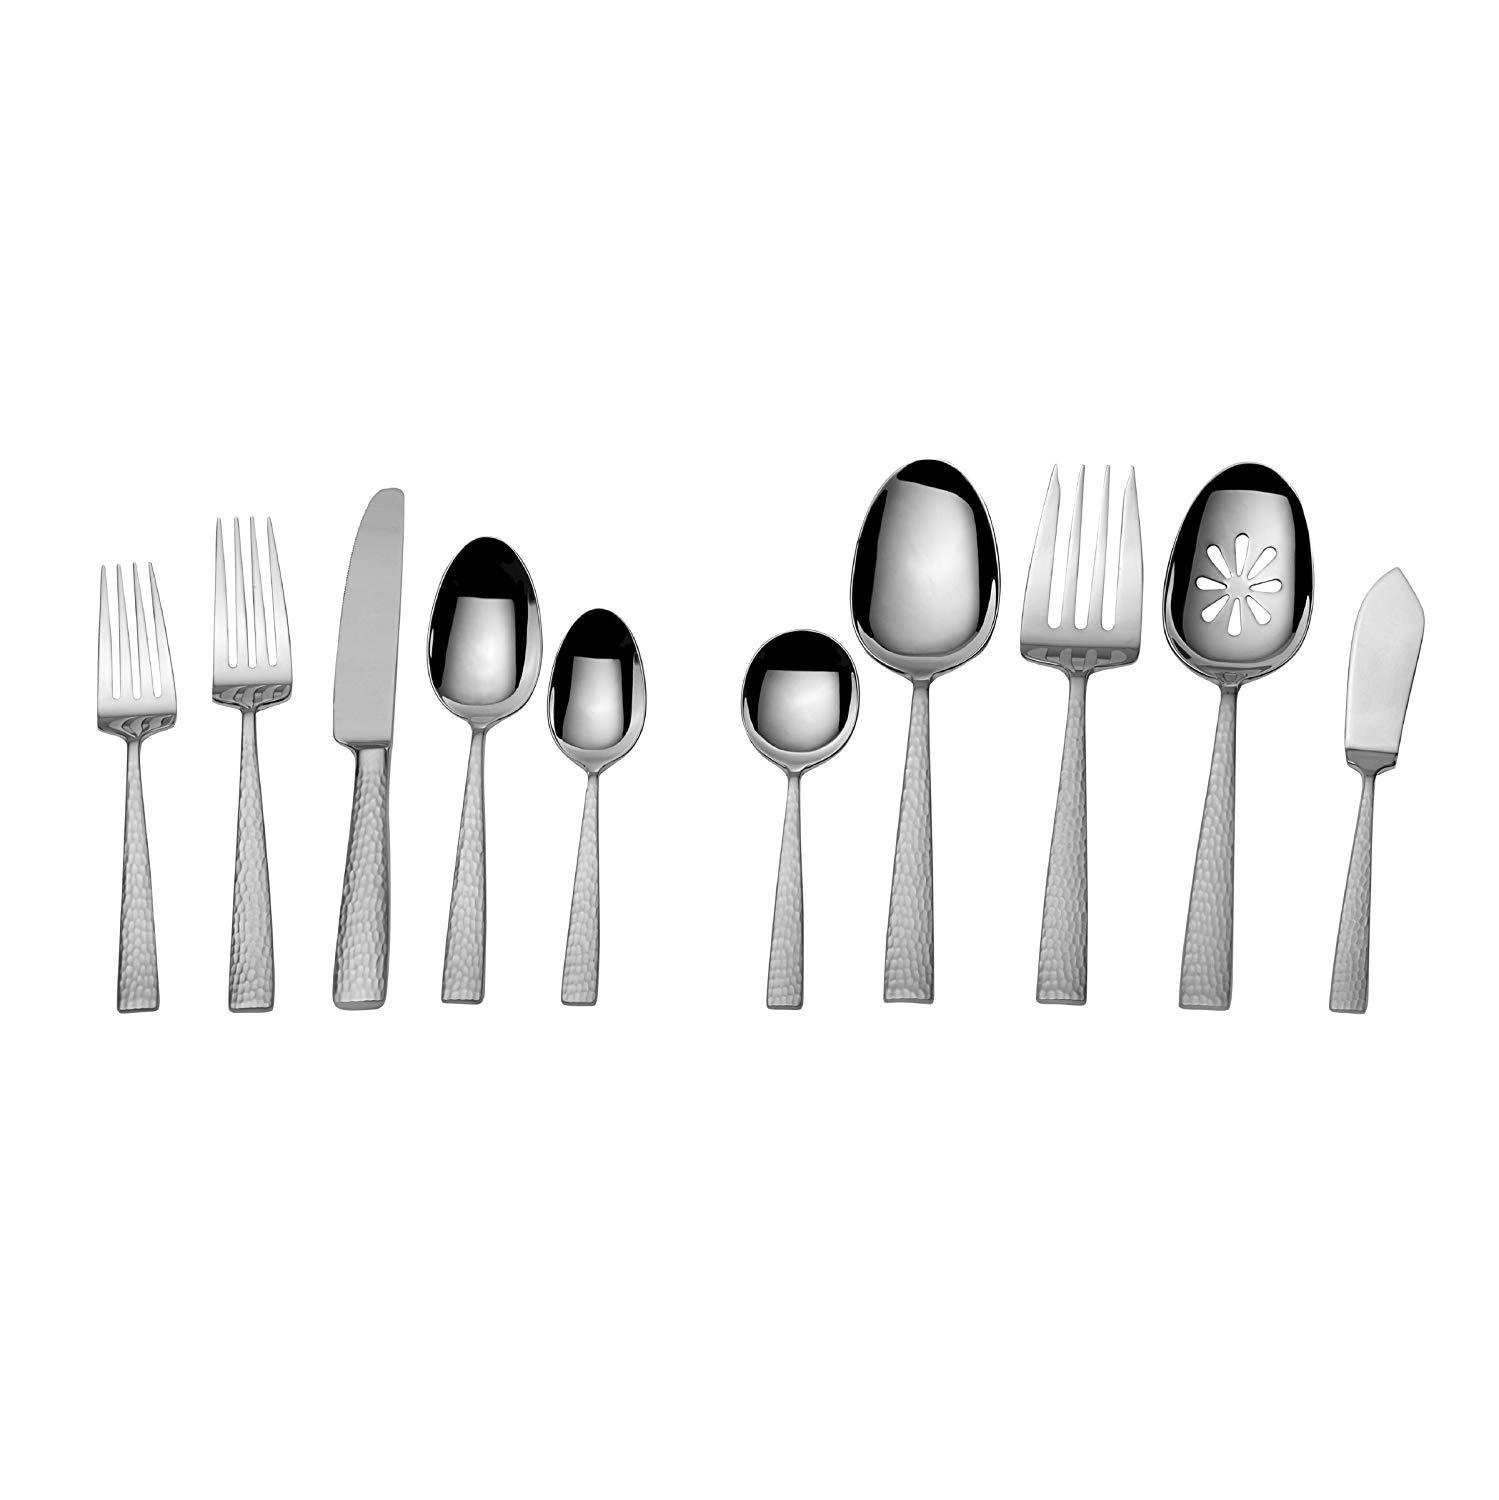 Mikasa Flatware Set 65Pc Oliver 18//10 Stainless Steel Service for 12